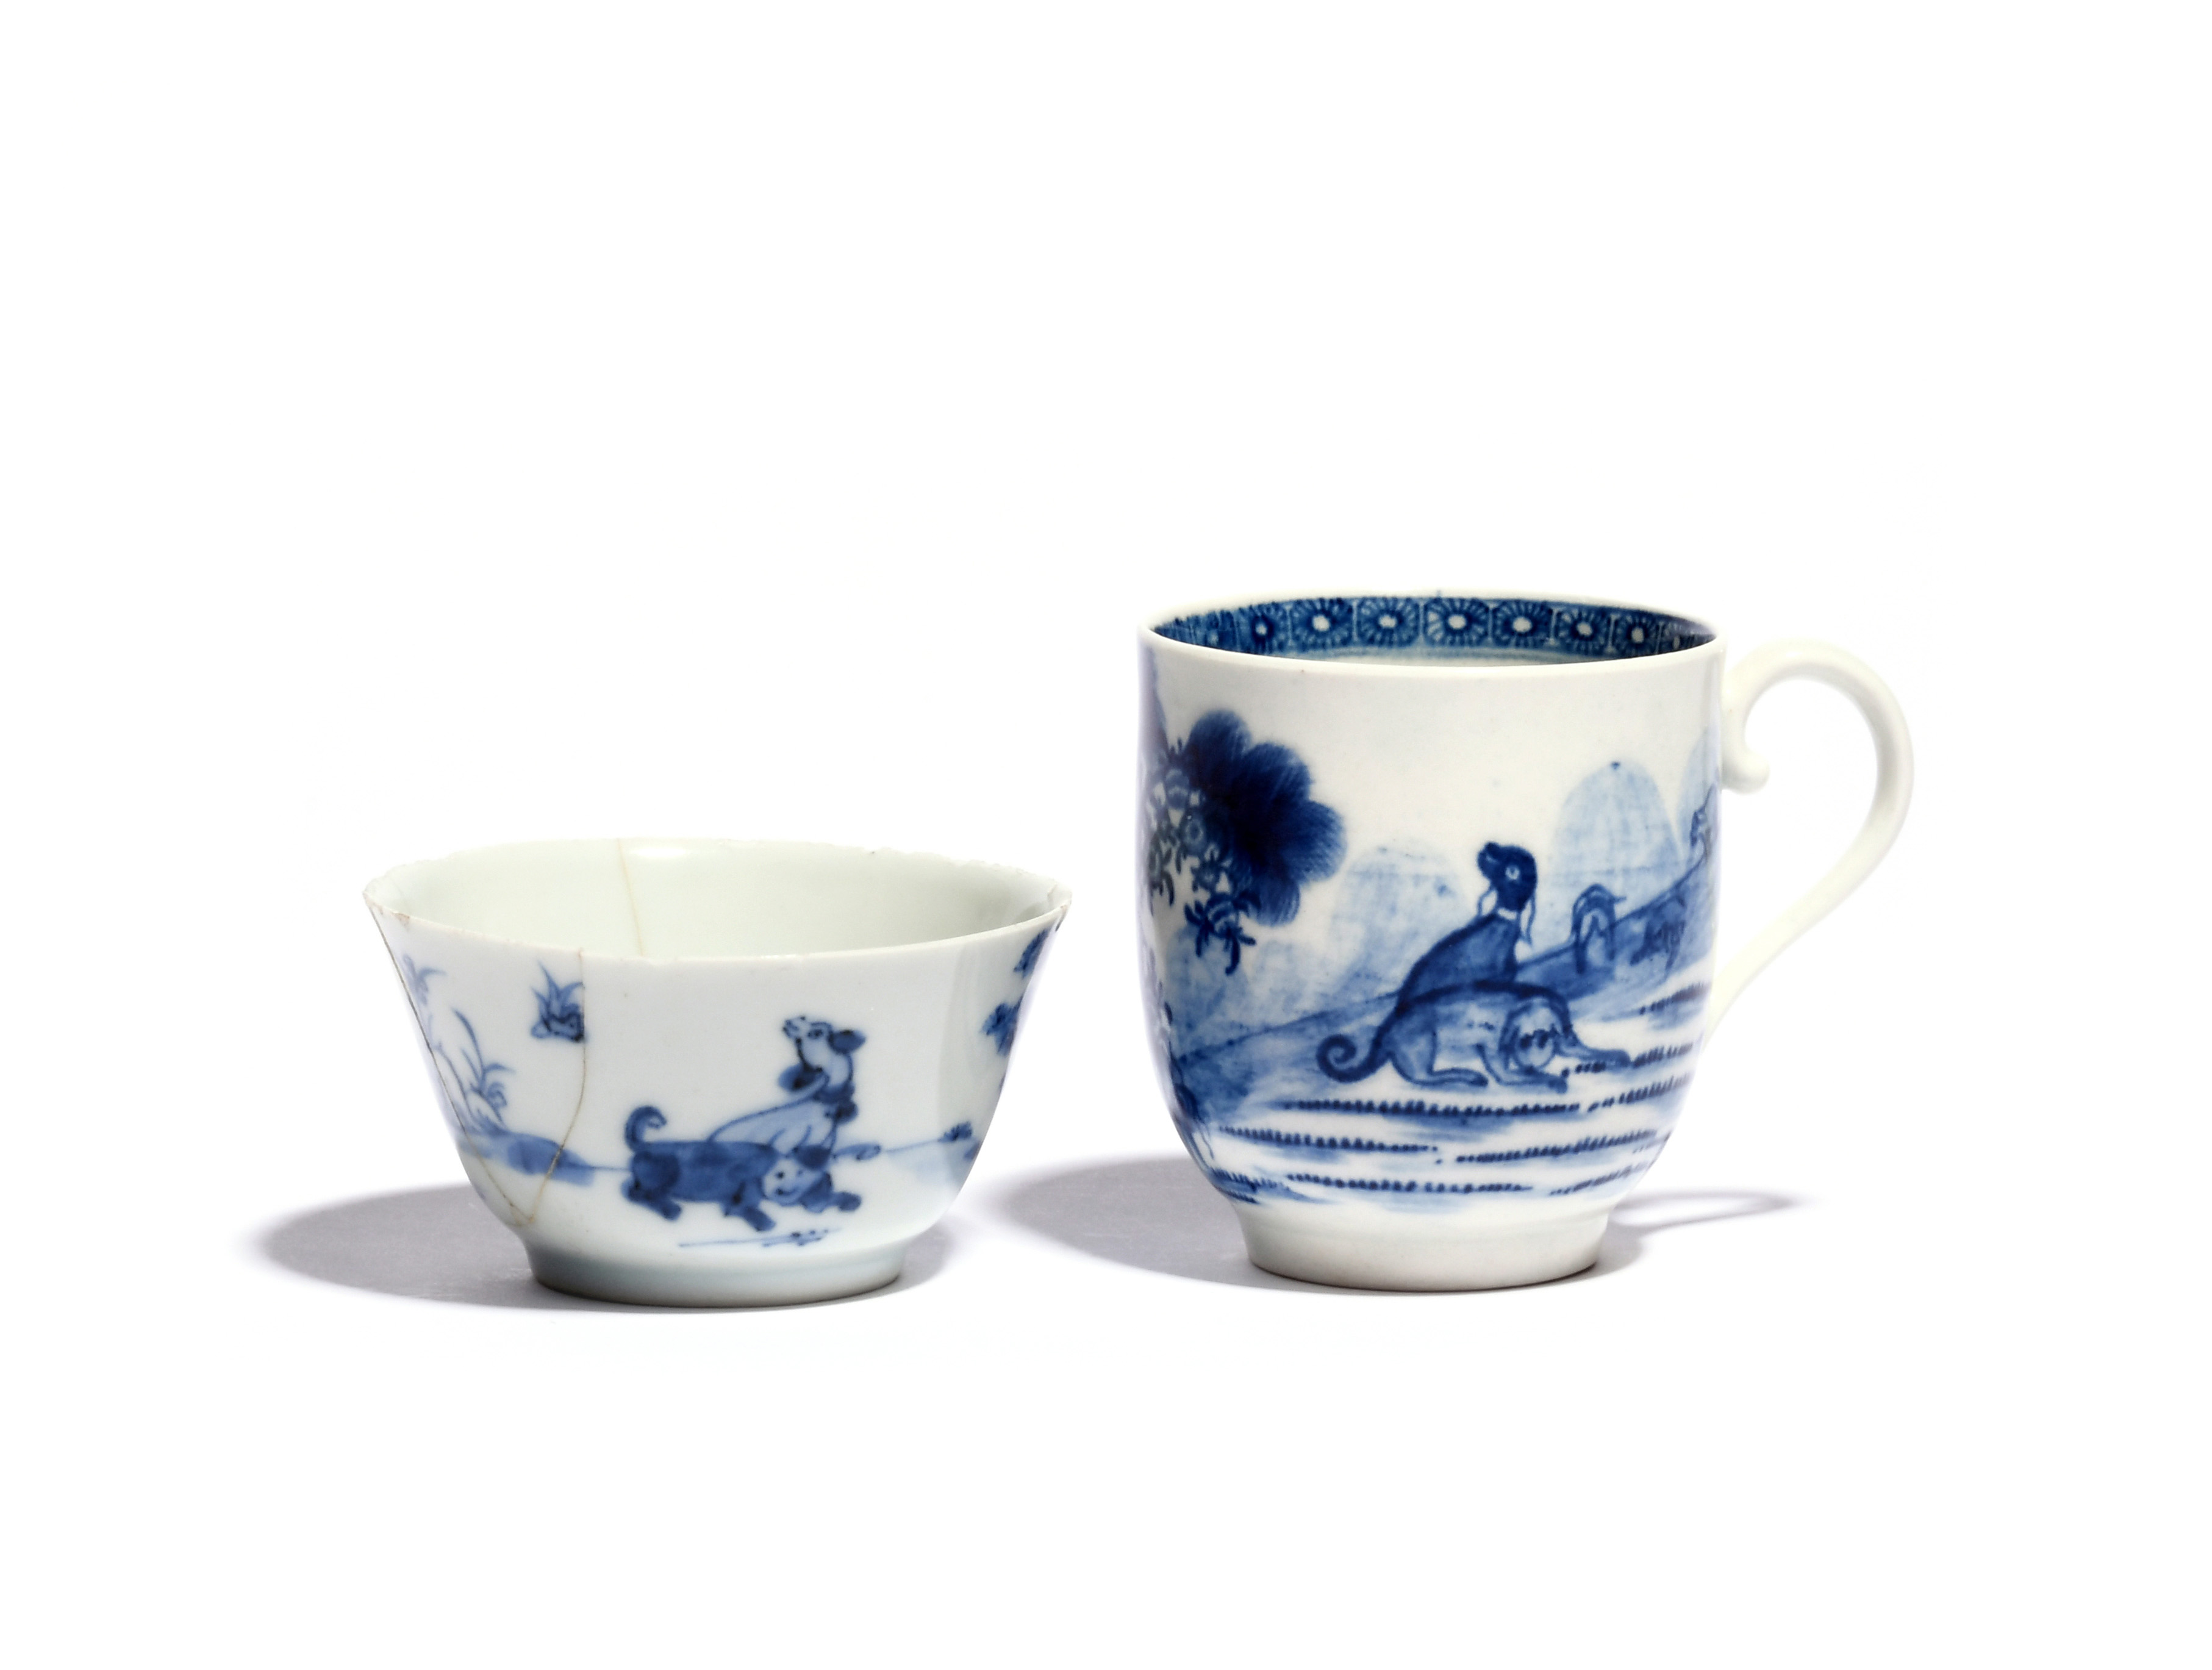 A rare Worcester blue and white coffee cup c.1760-65, painted with the Blue Valentine pattern with